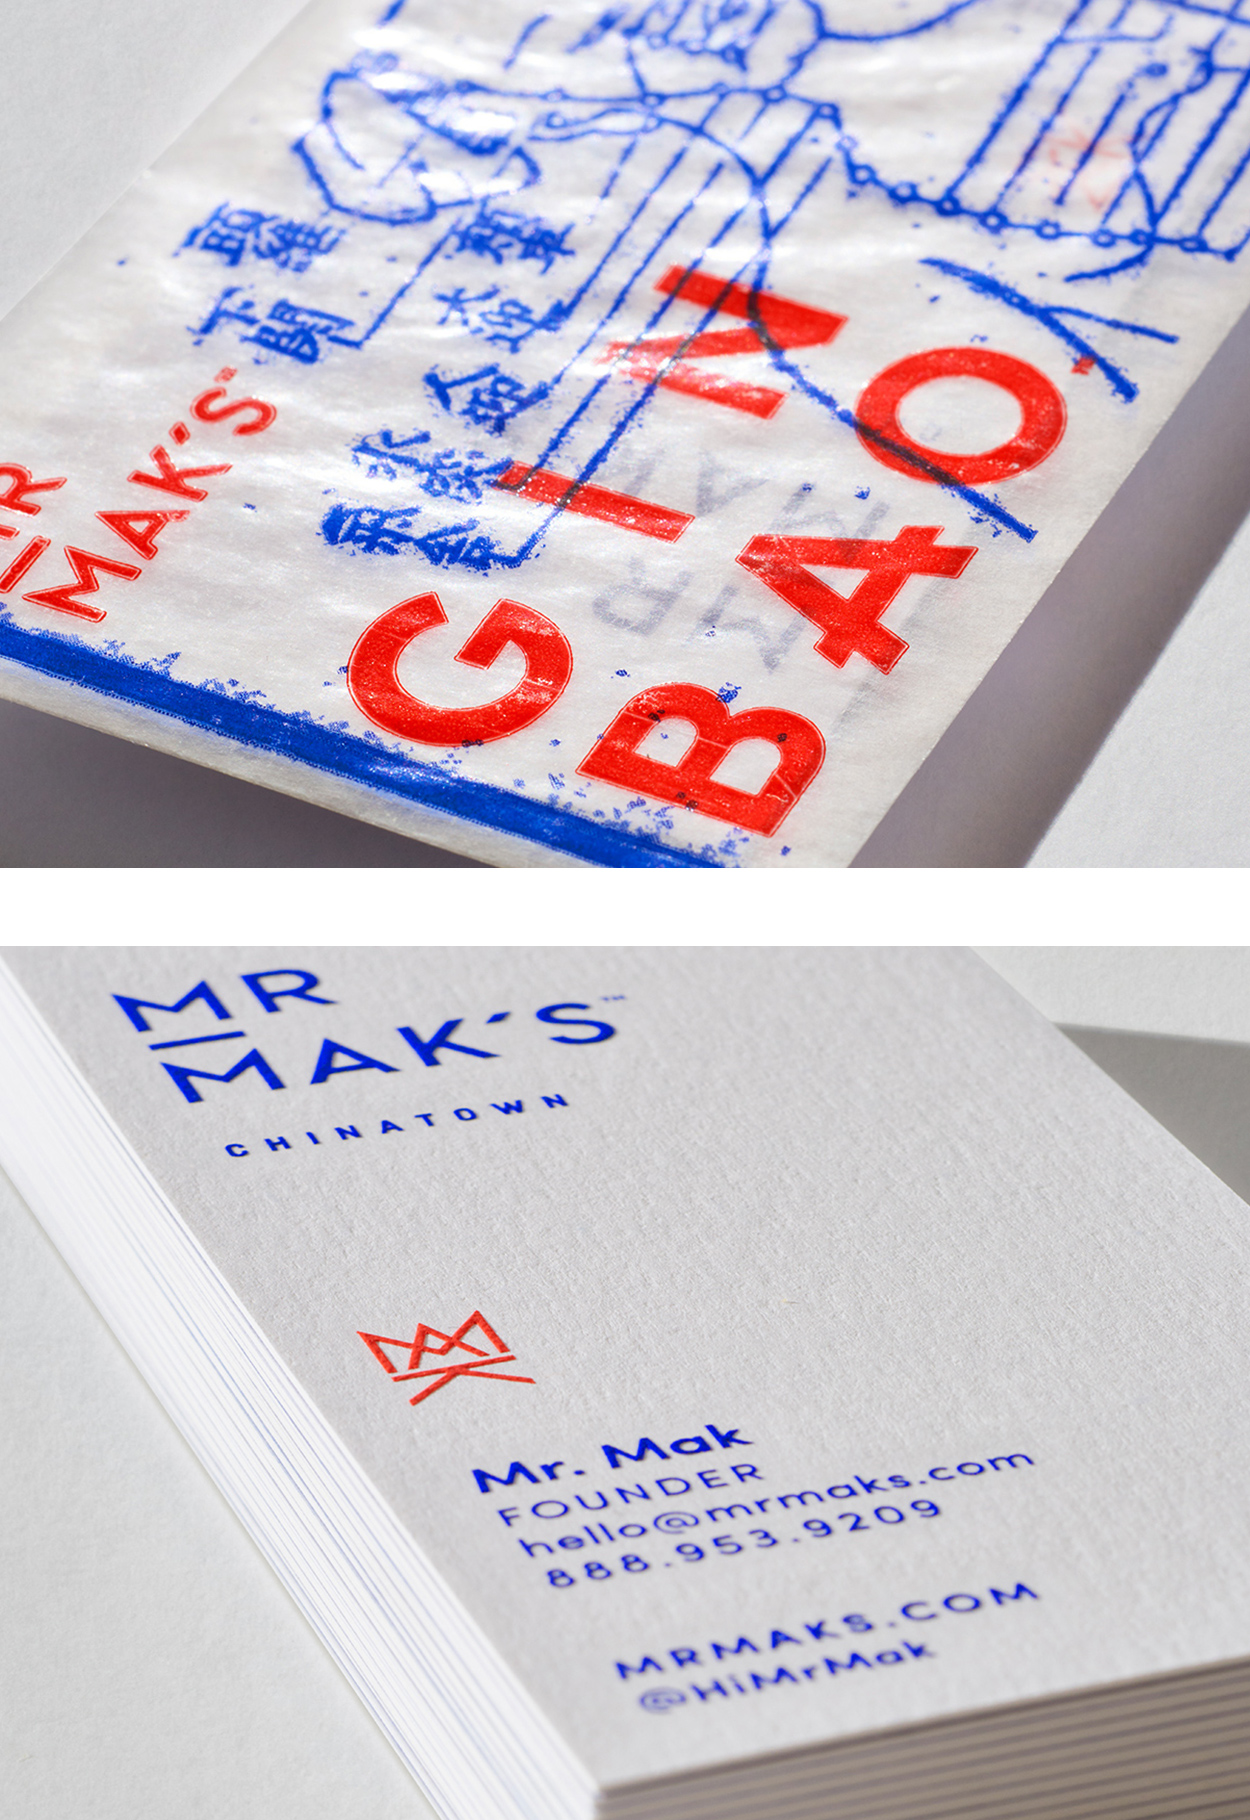 Mr. Mak's  collateral and business card detail, designed by Abby Haddican at Werner Design Werks.